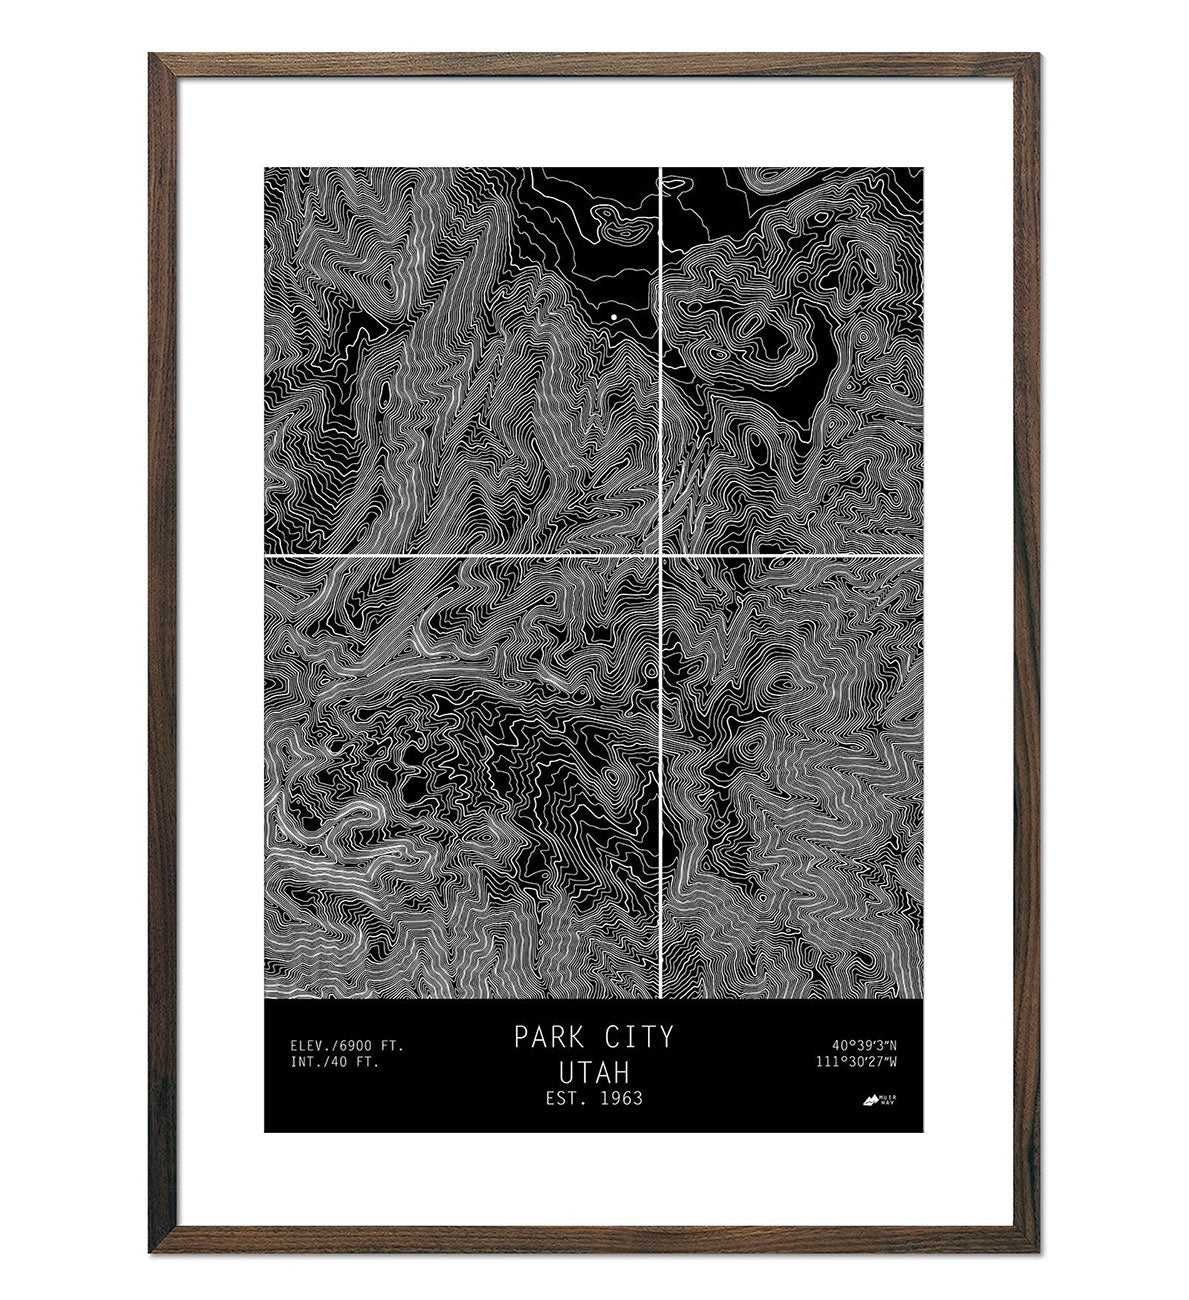 Park City Utah Topo Series Map Muir Way